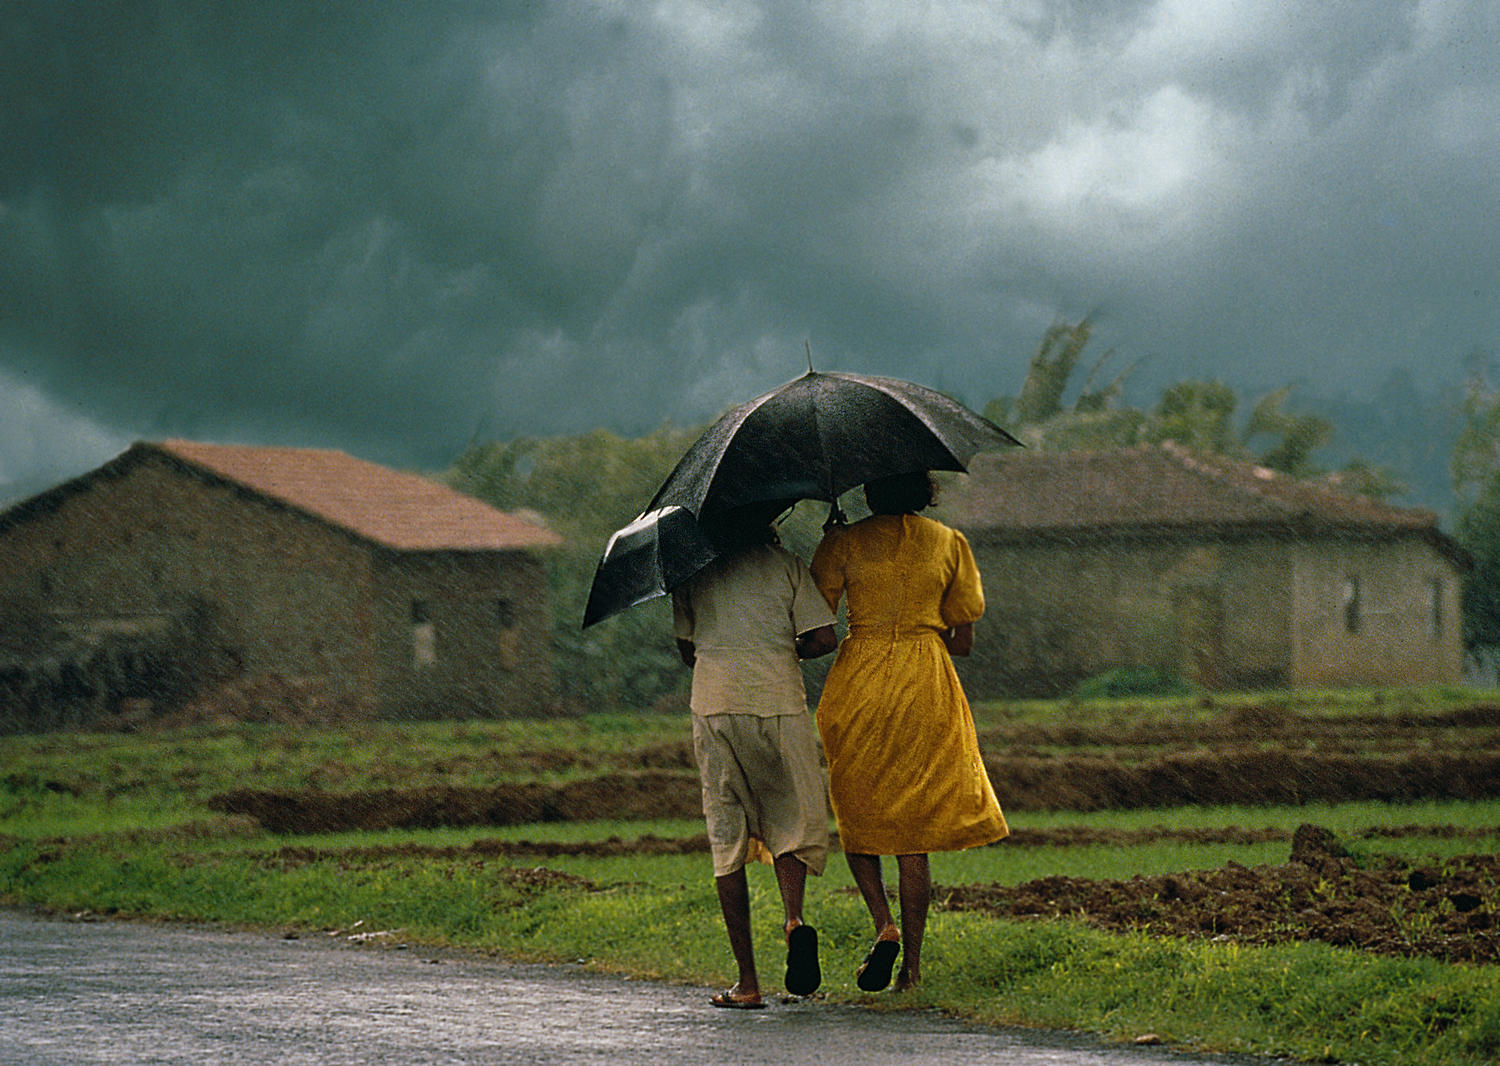 Girls walking in the rain, Goa